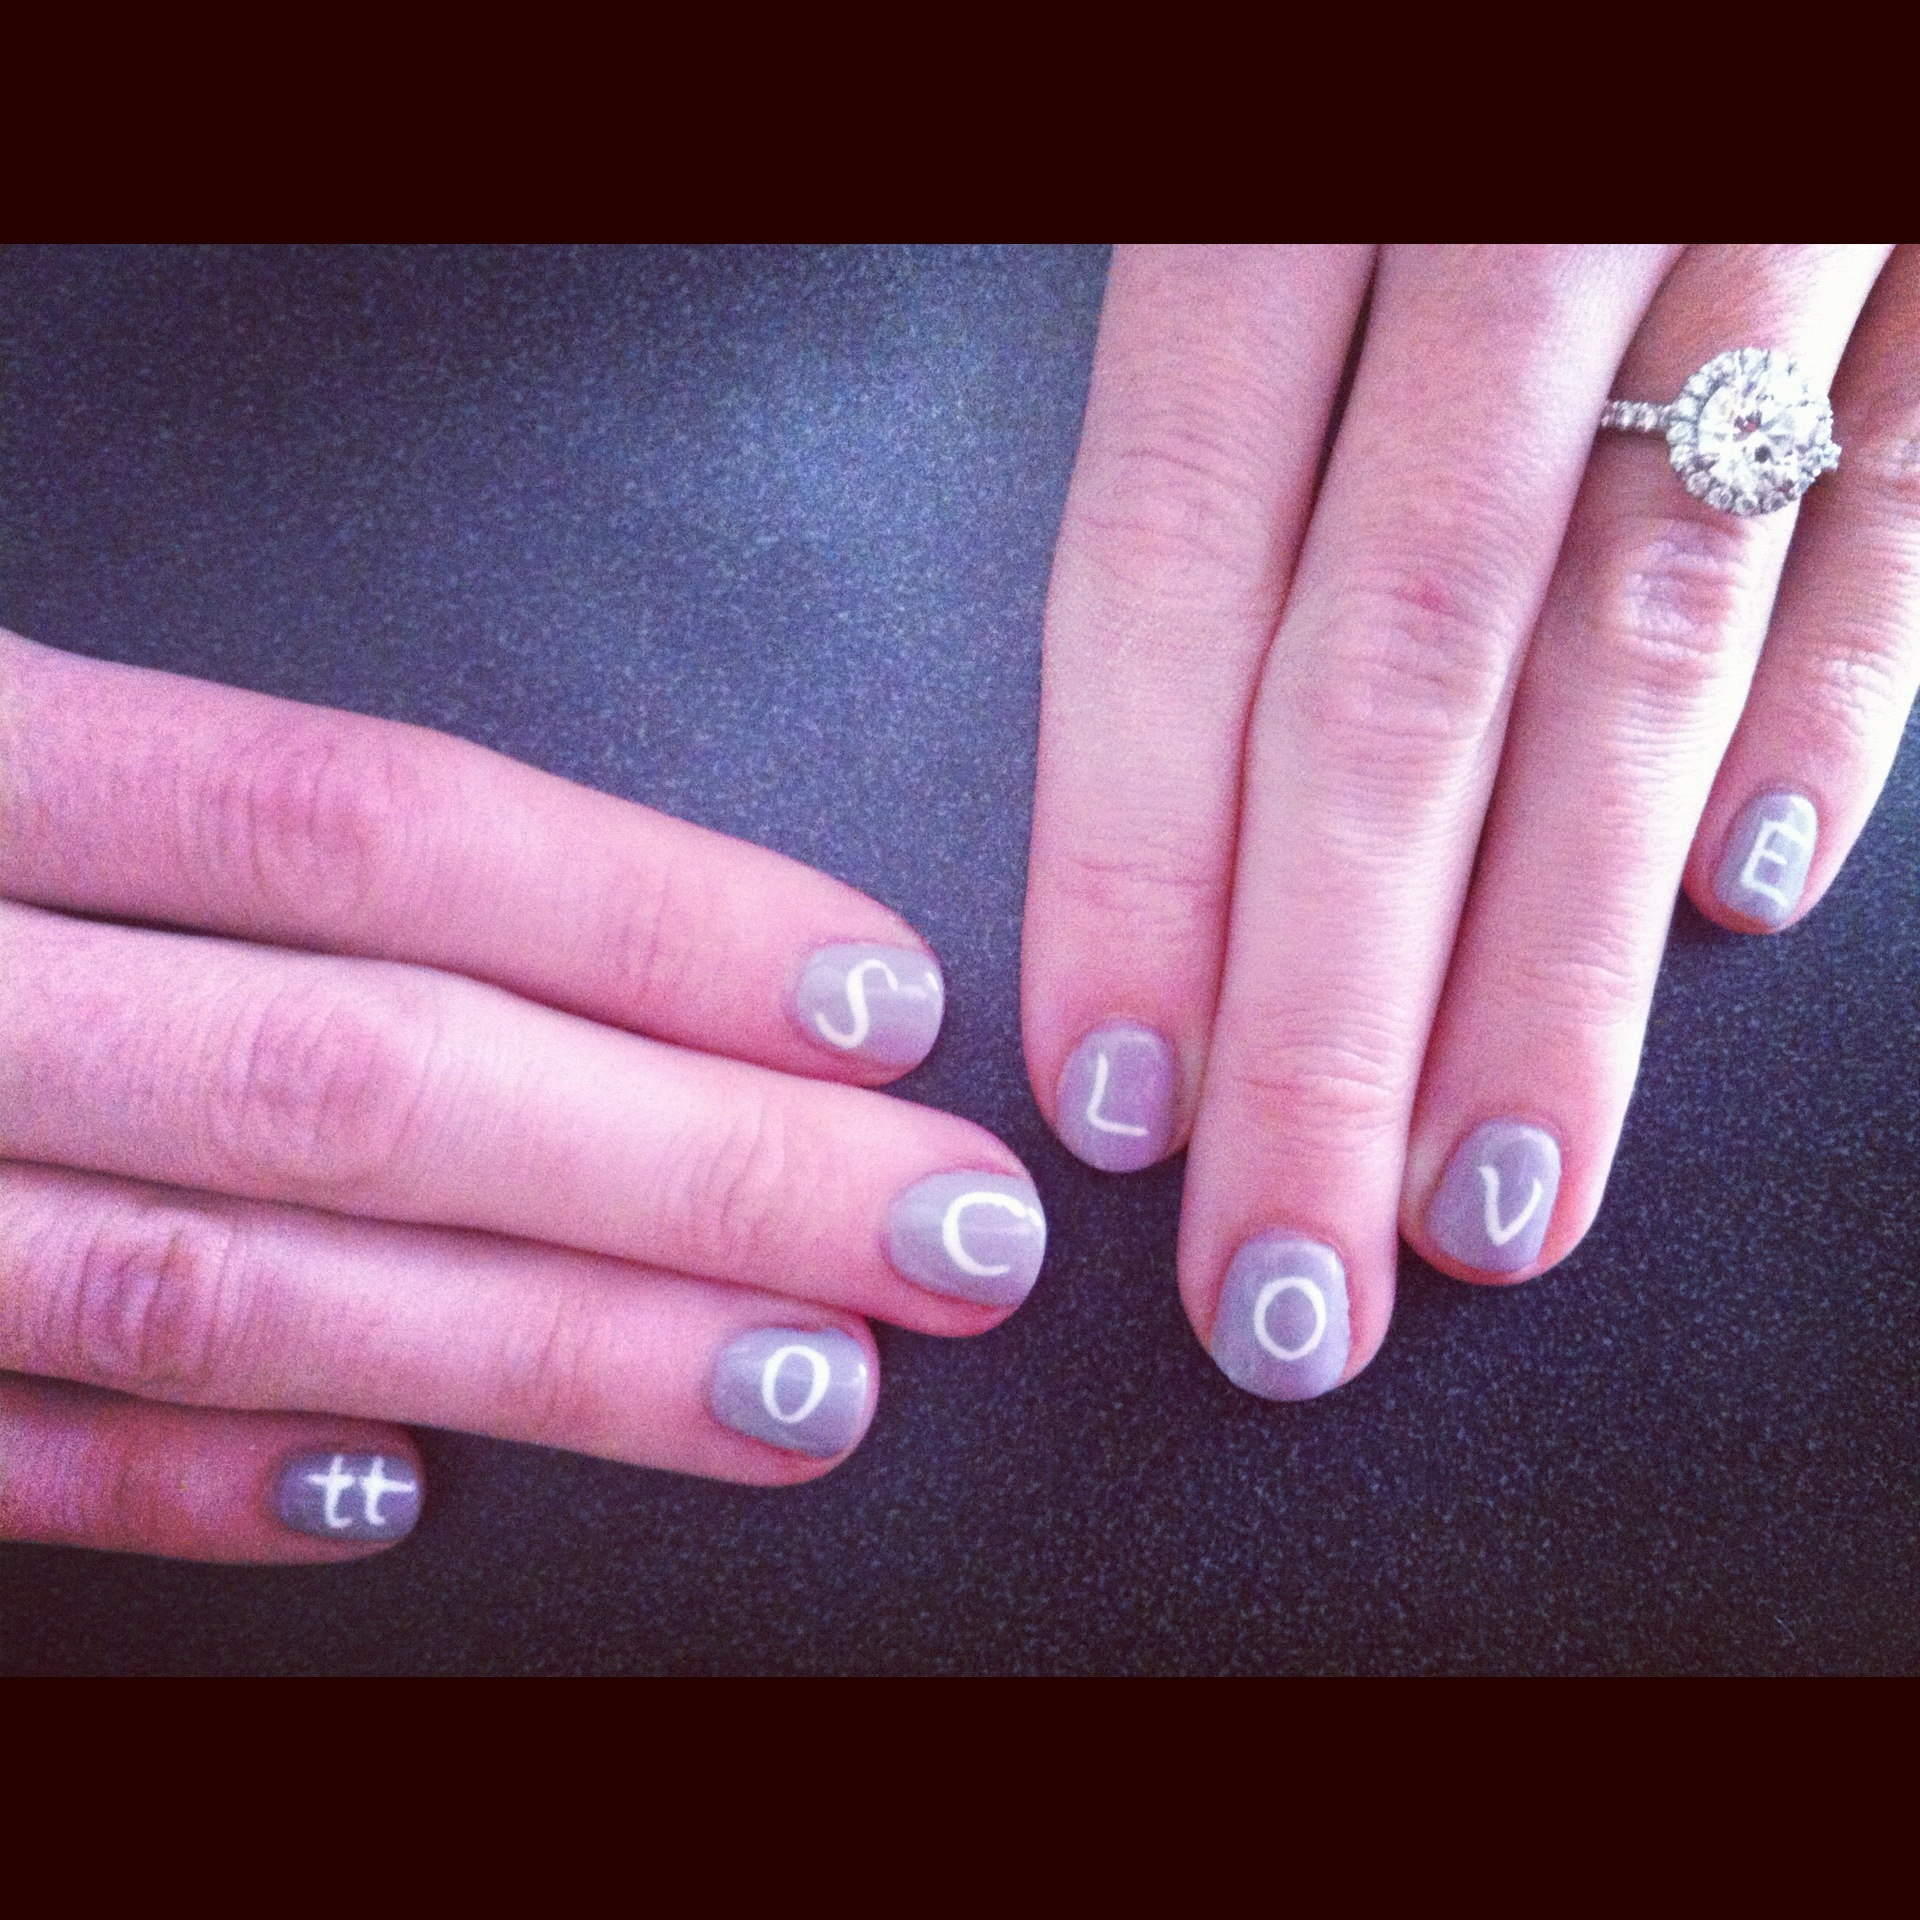 Show Your Love For Your Groom With Your Nail Polish!